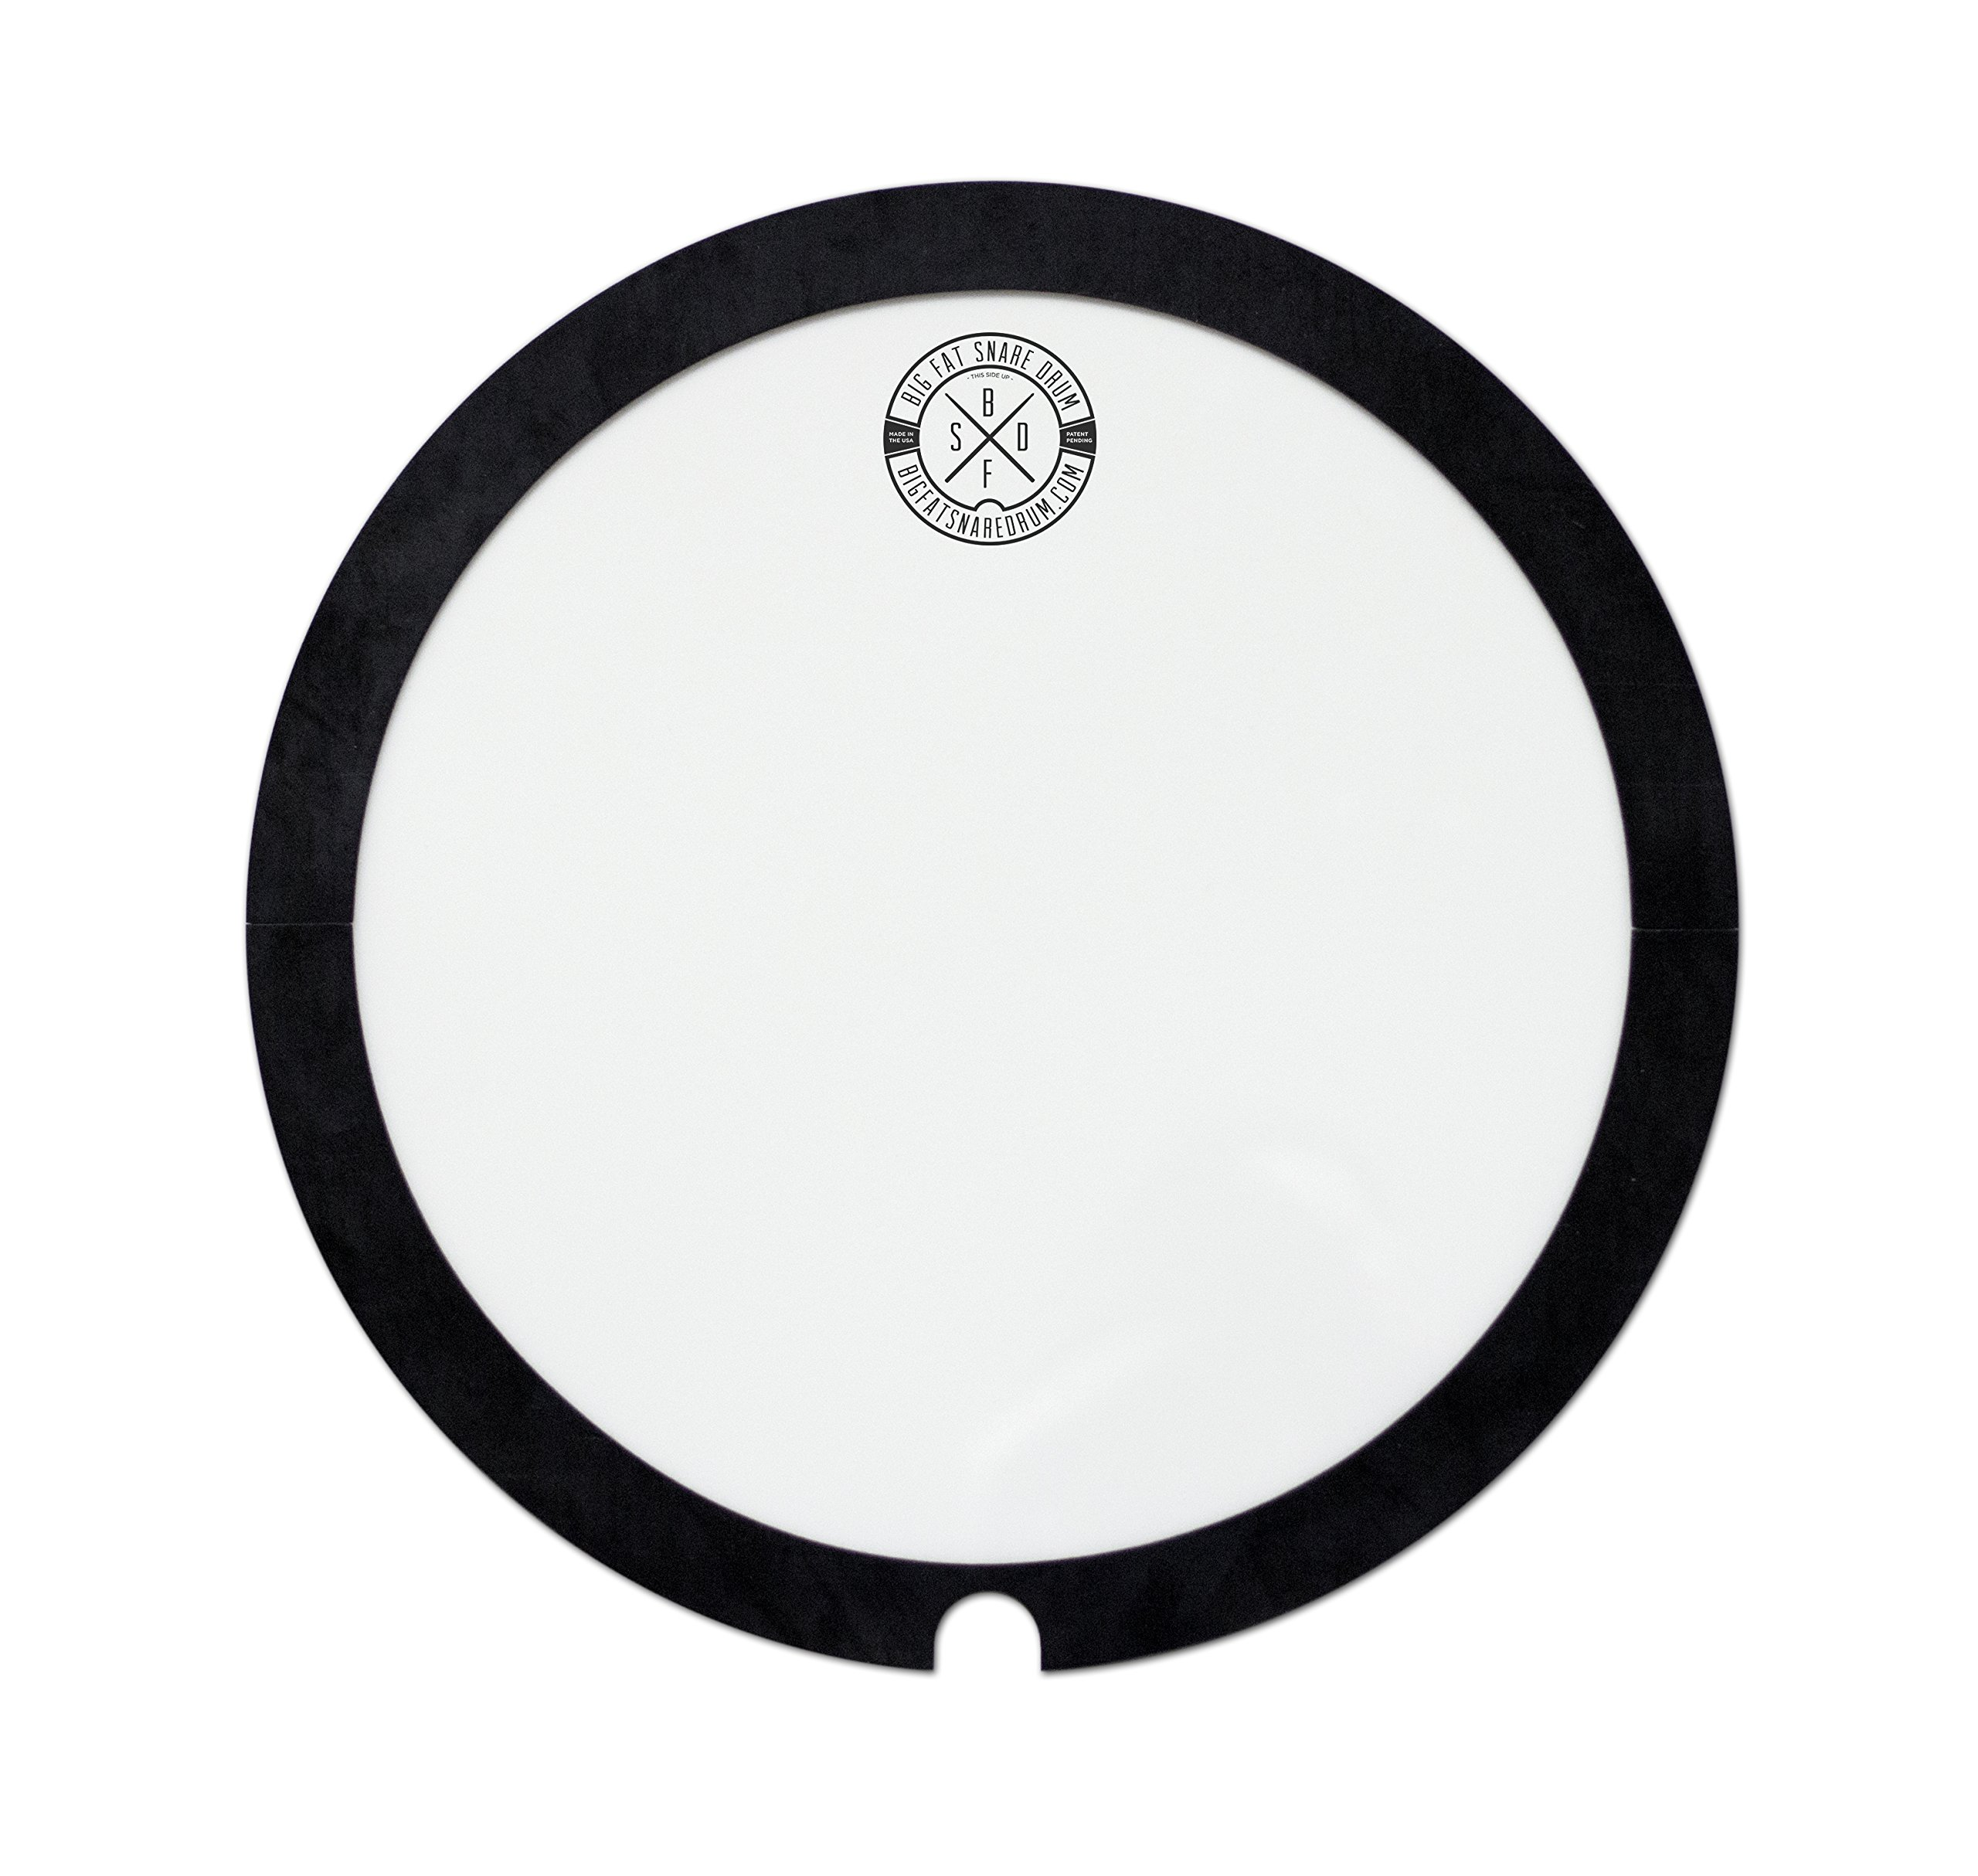 Big Fat Snare Drum Snare Drum Head (BFSD12) by Big Fat Snare Drum